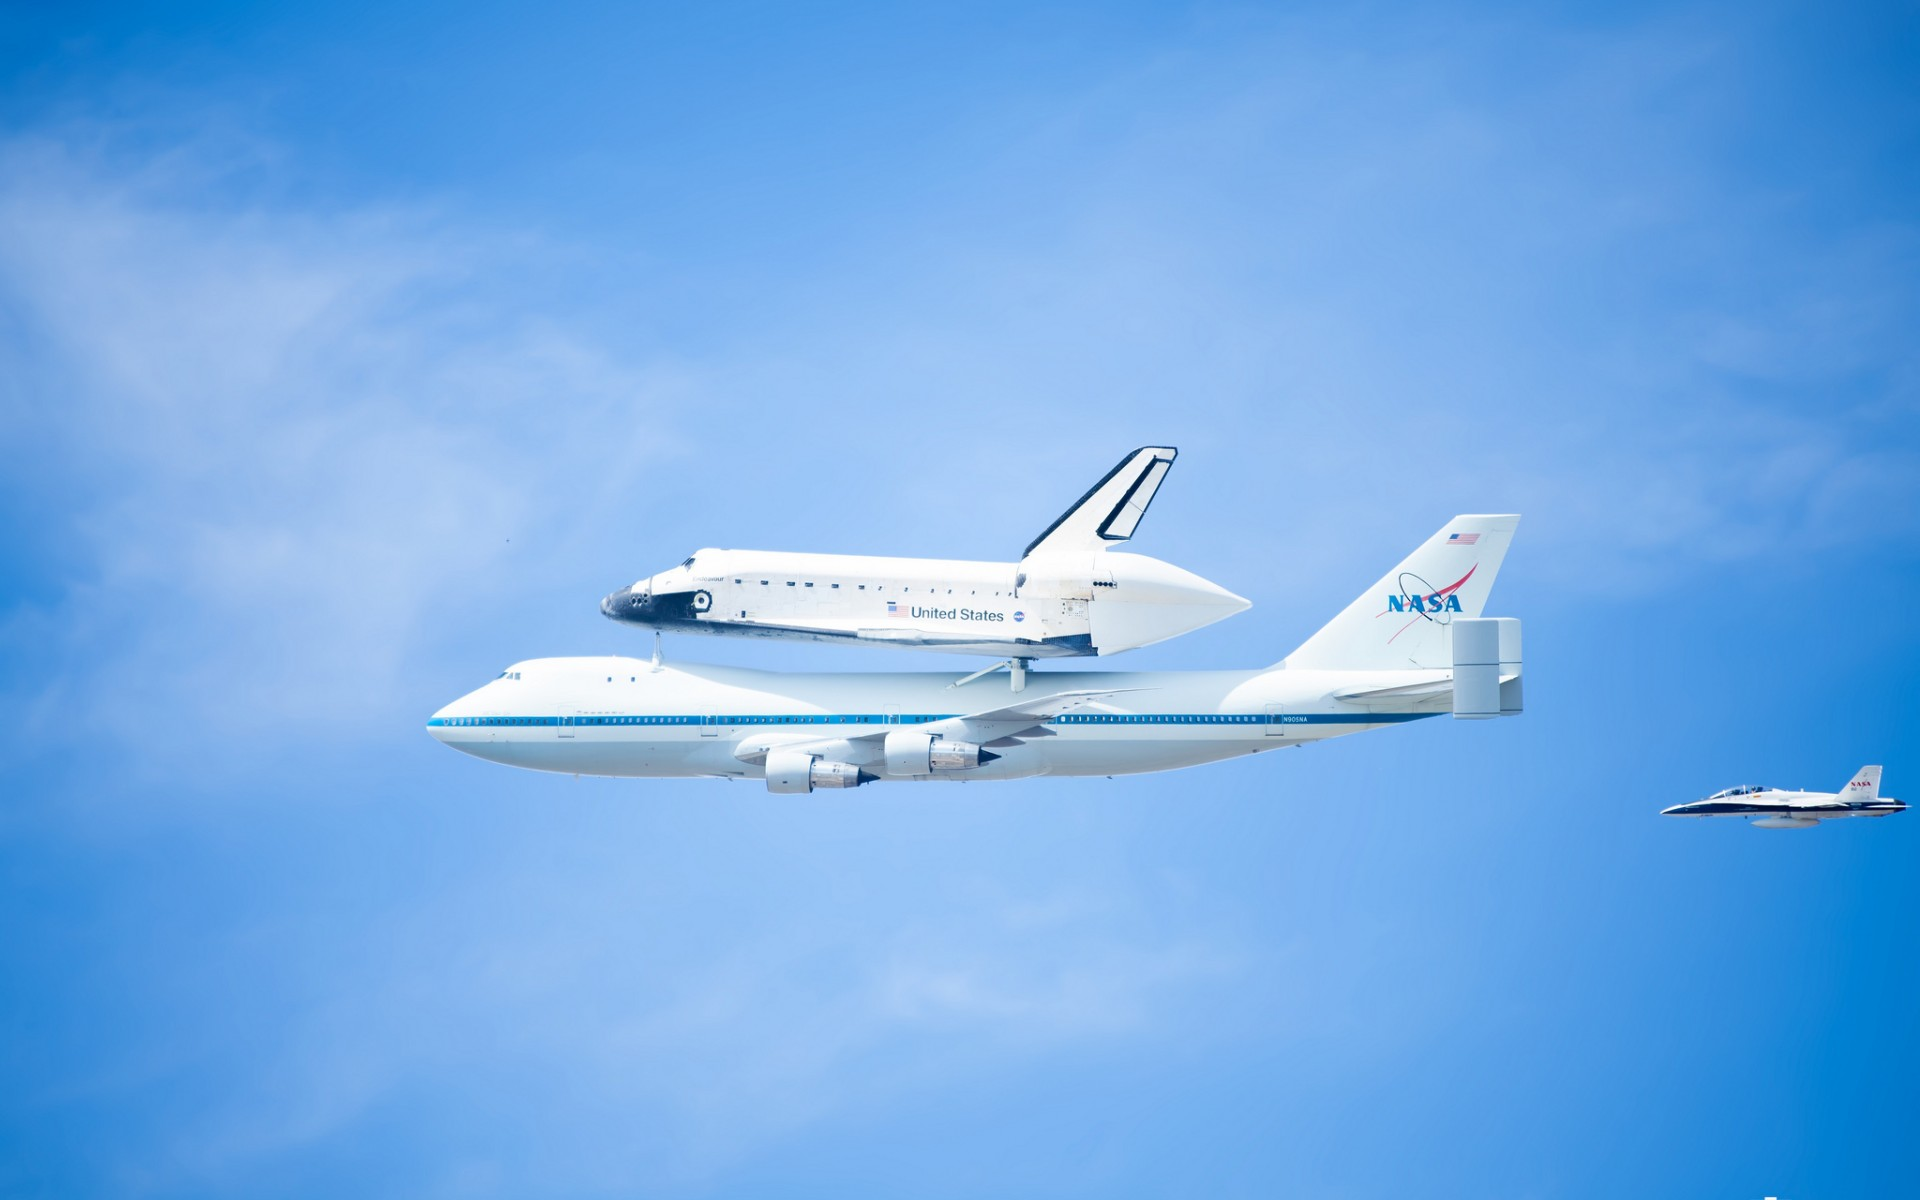 space shuttle vehicles - photo #47